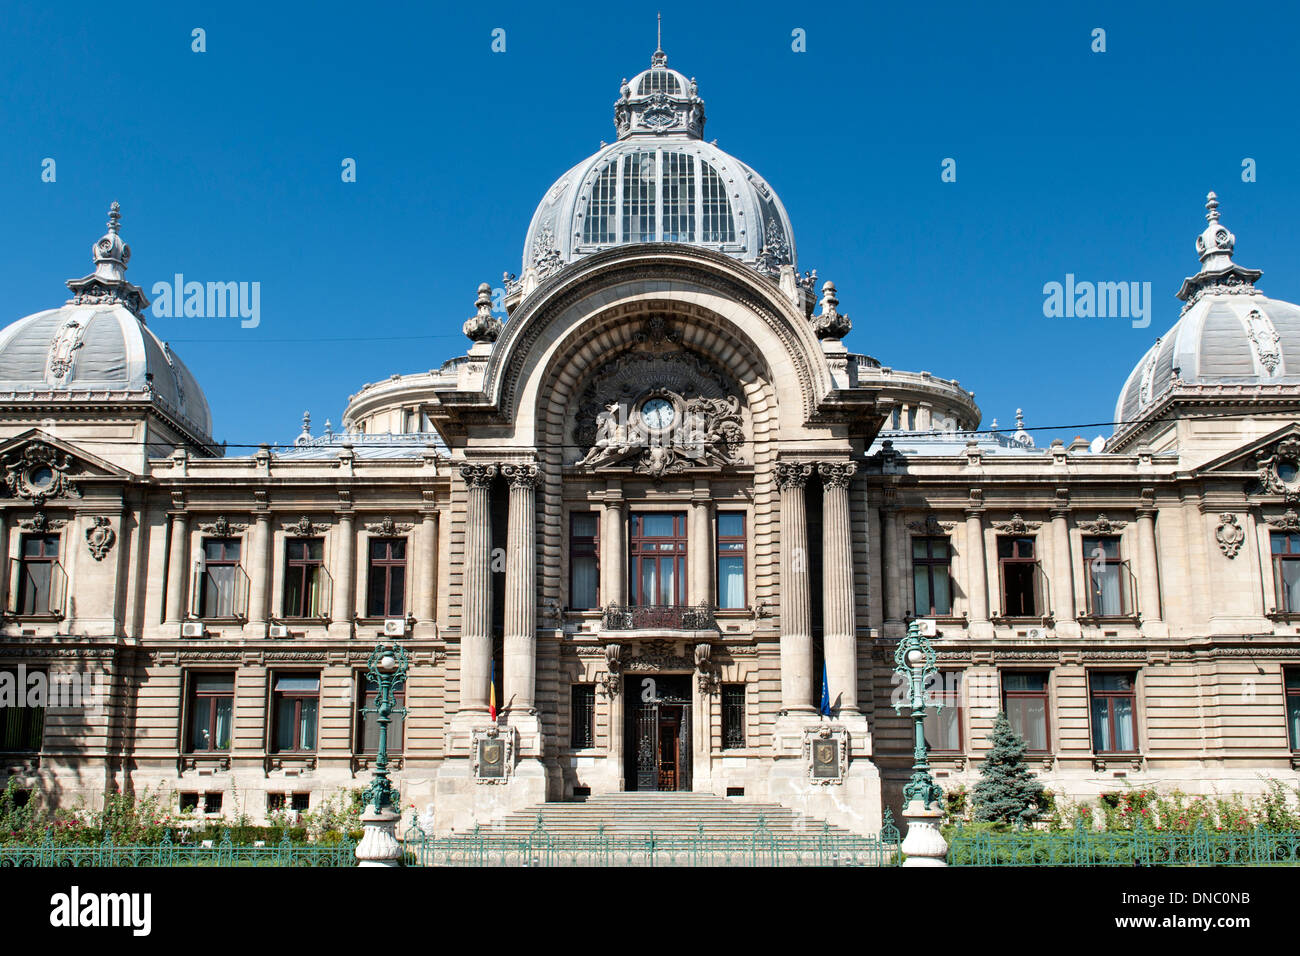 The CEC palace in Bucharest, the capital of Romania. It was built in 1900 and is the HQ of the national savings bank C.E.C. - Stock Image